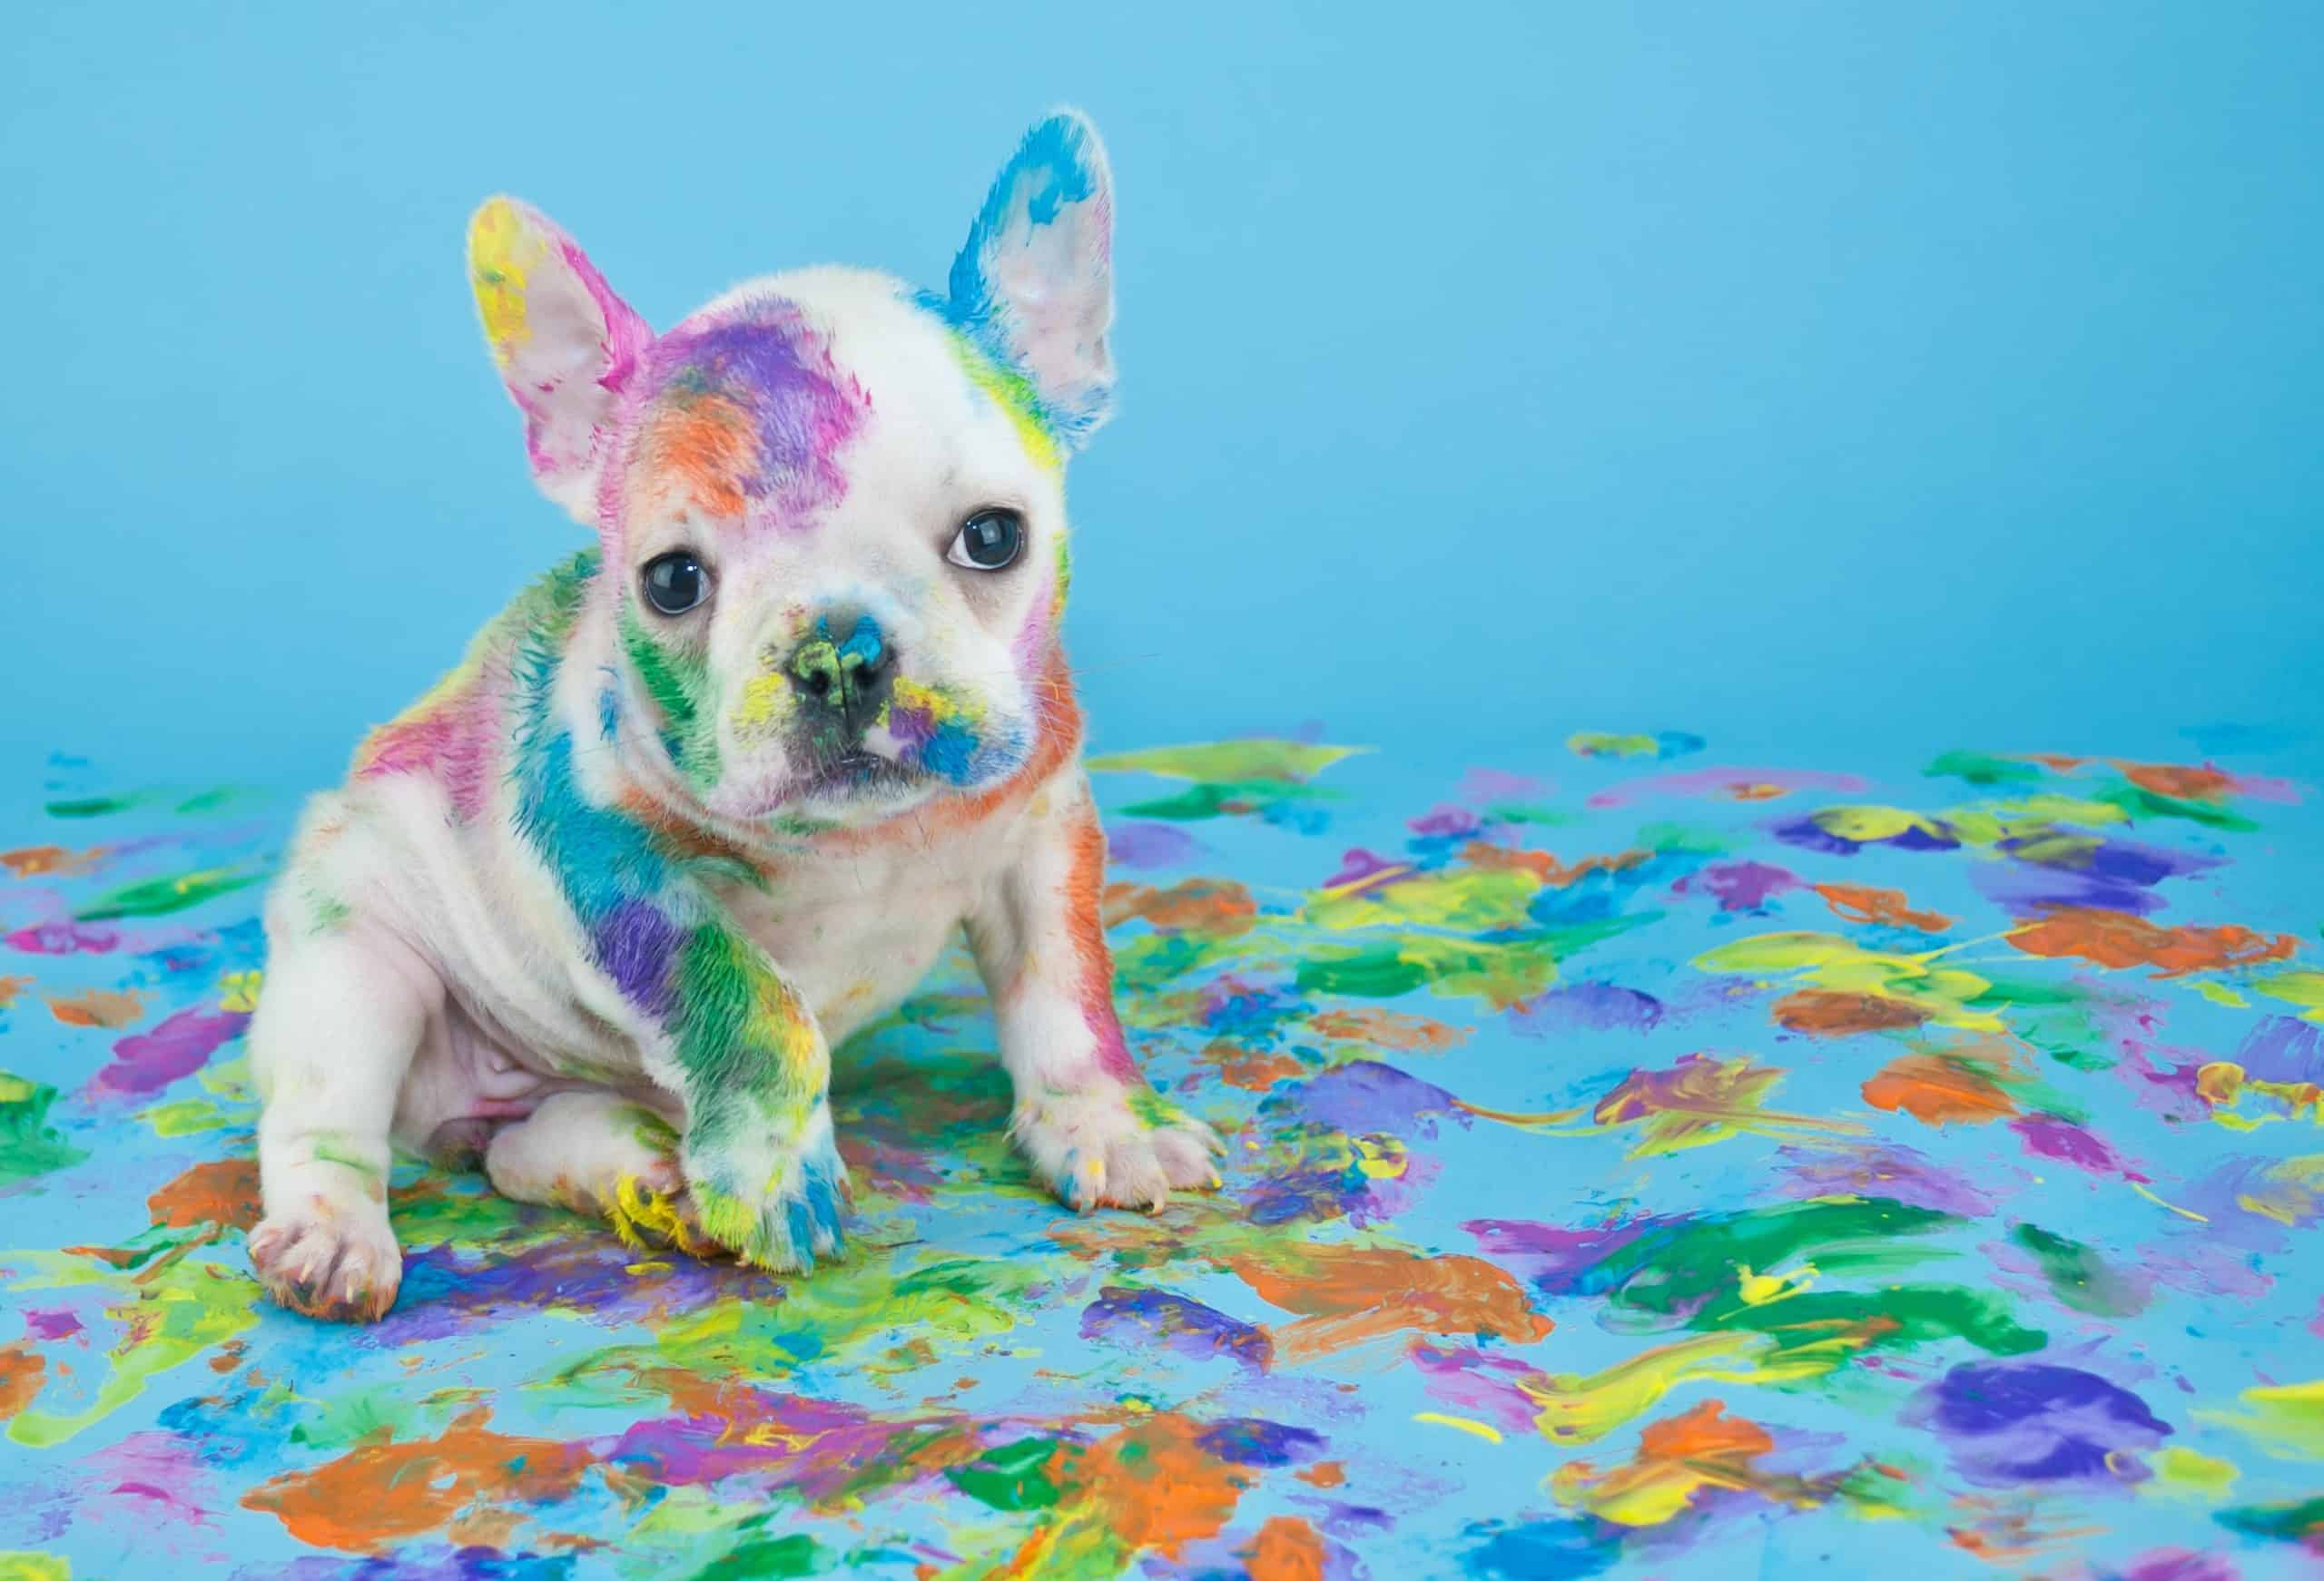 French bulldog puppy covered in bright paint. Keep your dog away from pandemic poison dangers including yeast, bread, coffee, wine, paint, and marijuana.